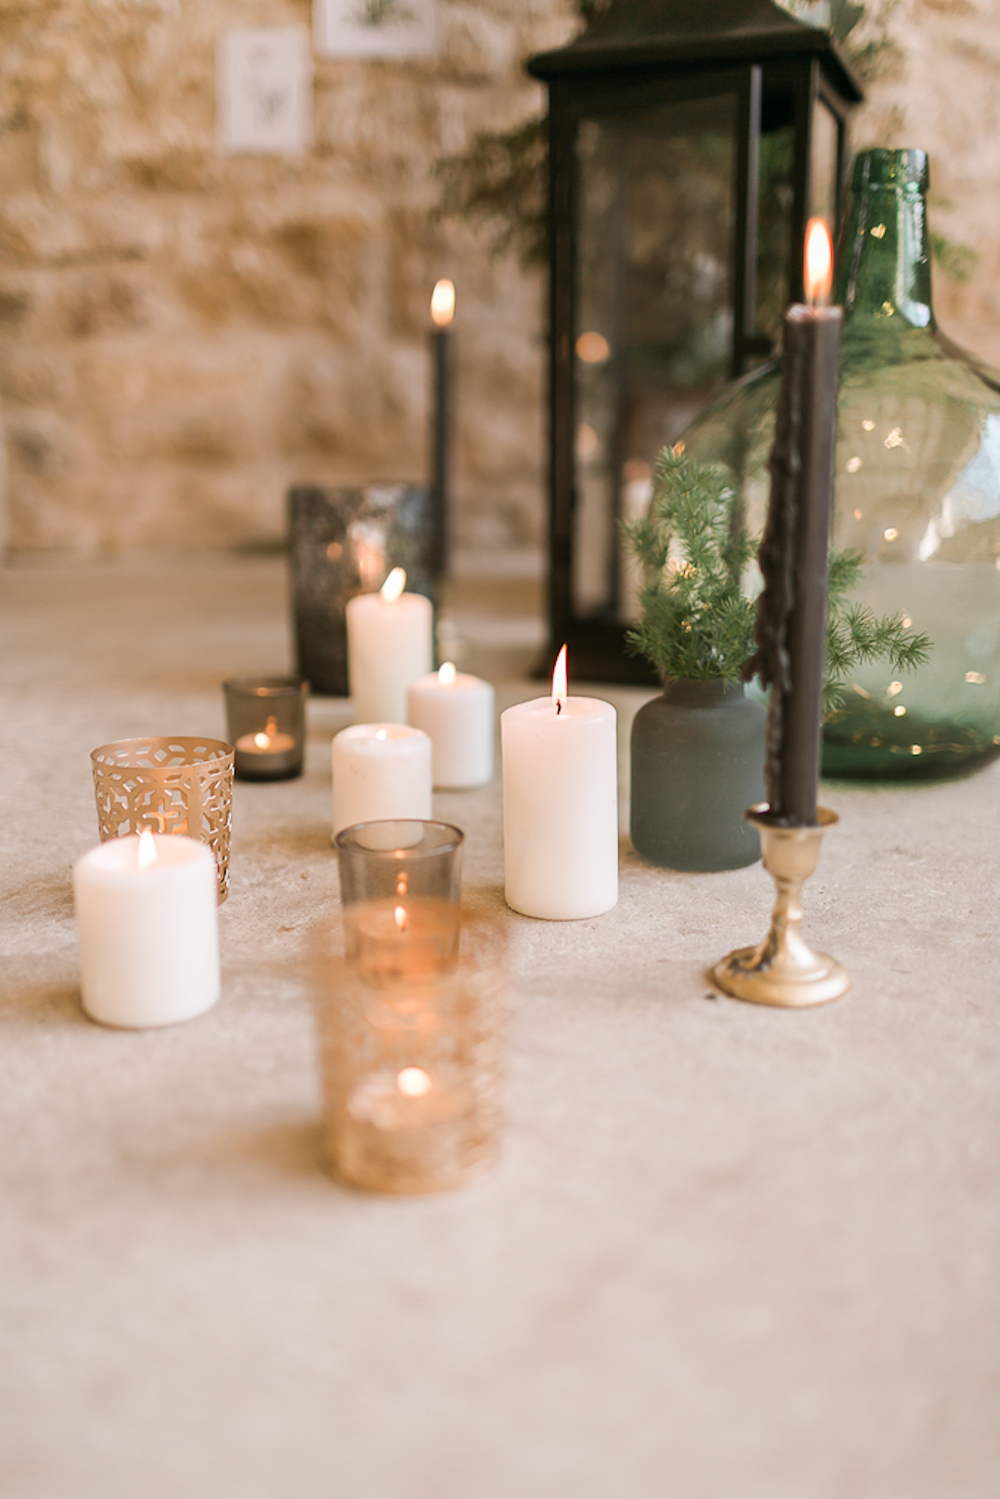 parisian-inspired-blog-mariage-shooting-inspiration-vegetal-abbaye-trois-fontaines-marne-cg-photographie-9.jpg